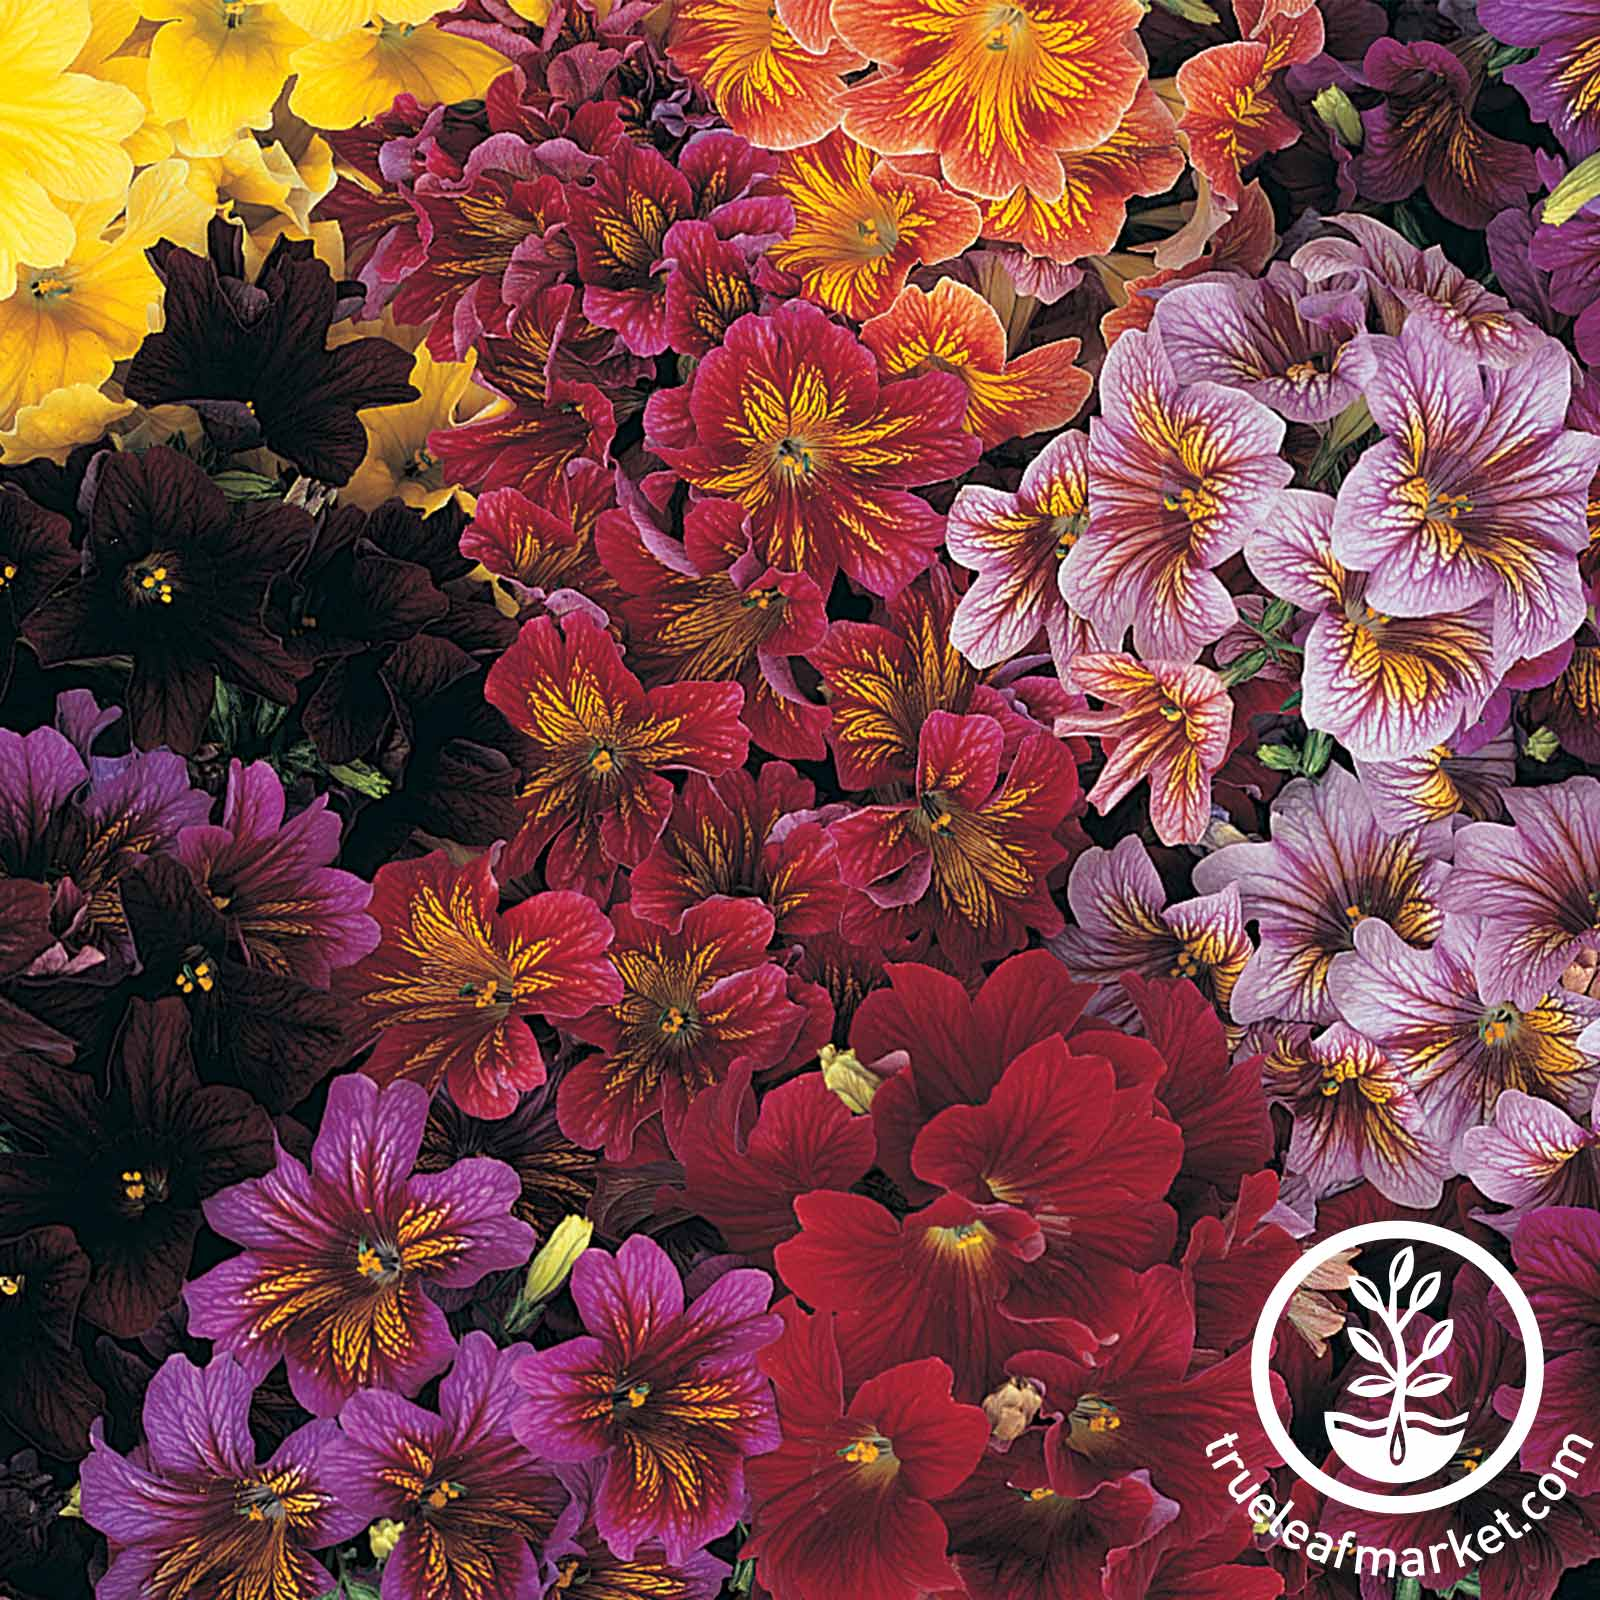 Salpiglossis Royale Series Mix Seed